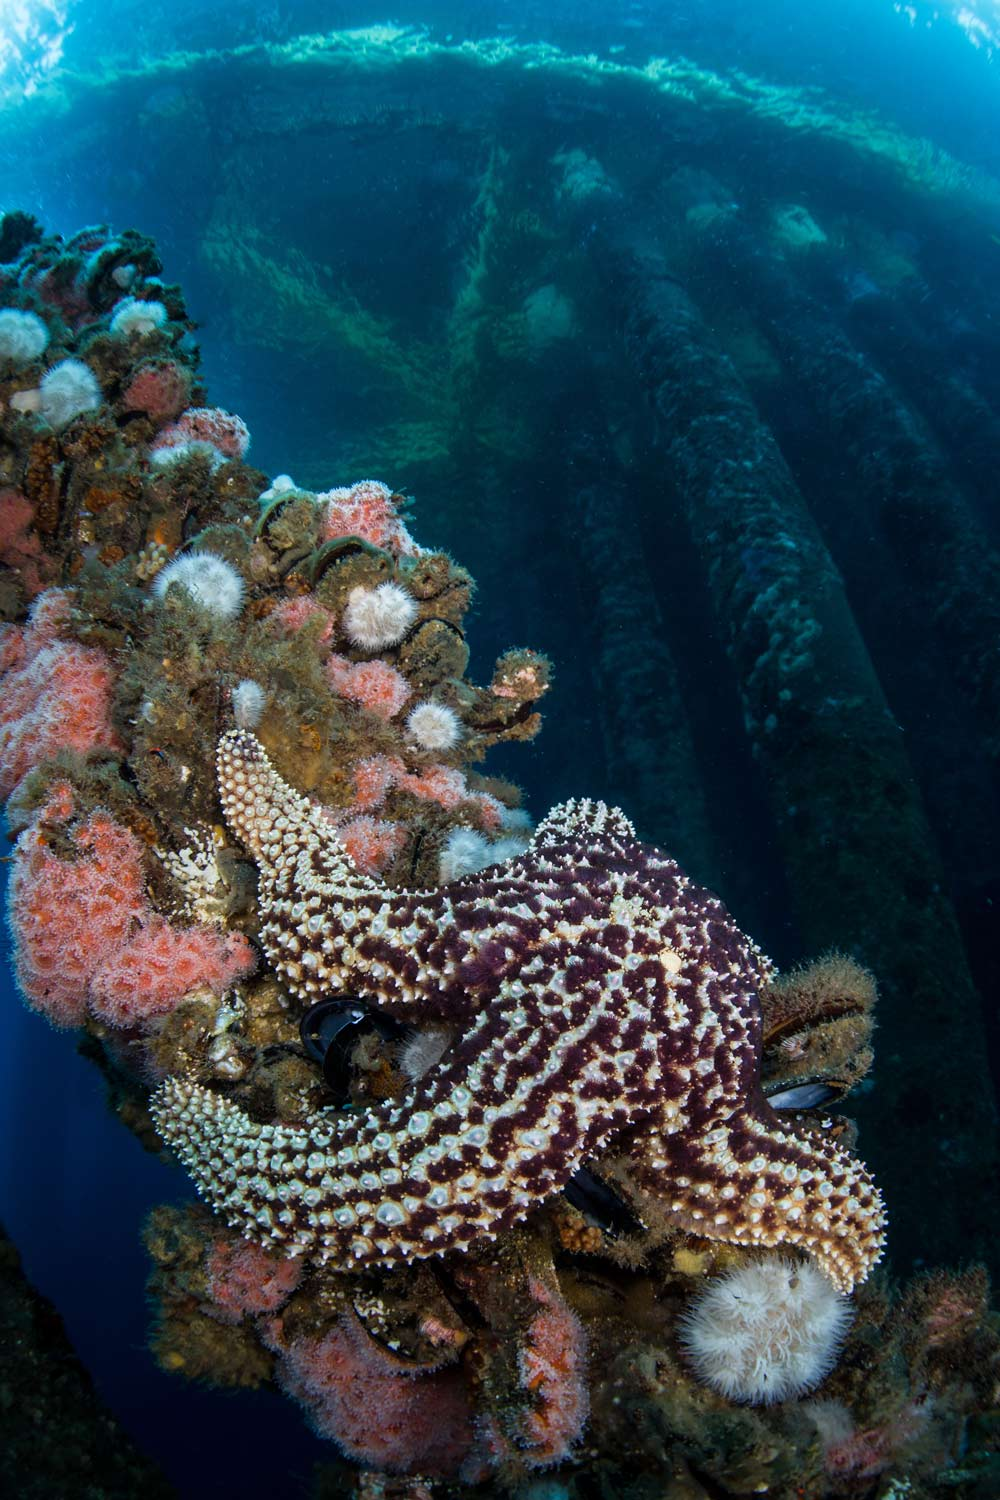 Oil rig understructures make for thriving marine habitats.